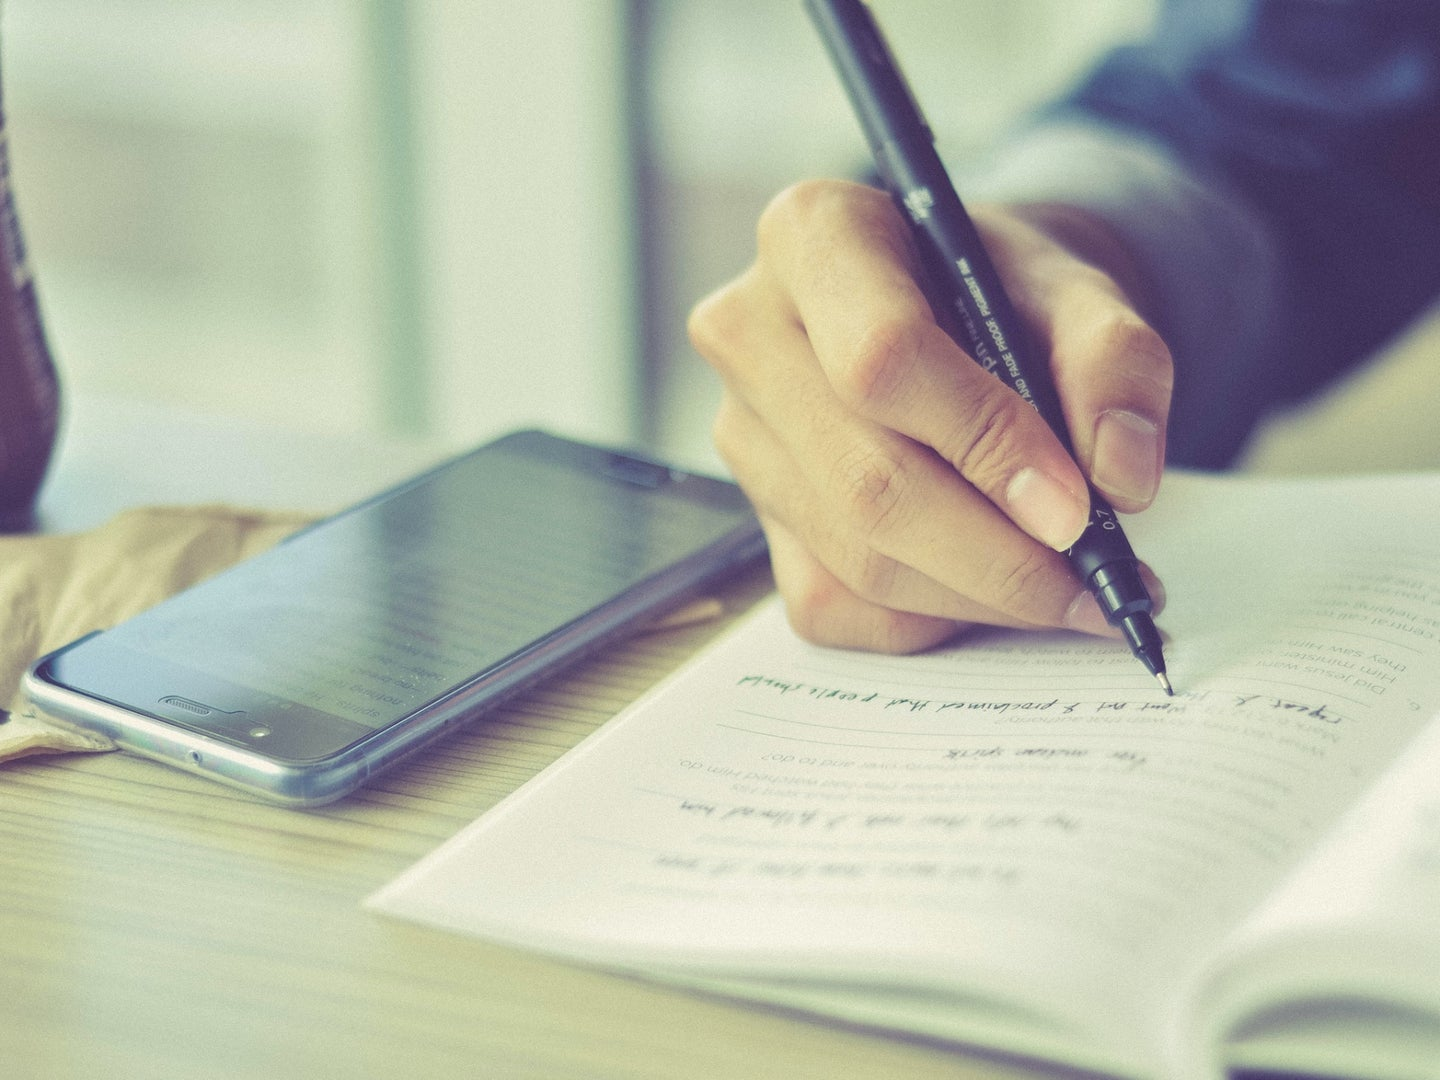 A person using a pen to write in a paper notebook, with a phone on the table next to them for storing digital notes.